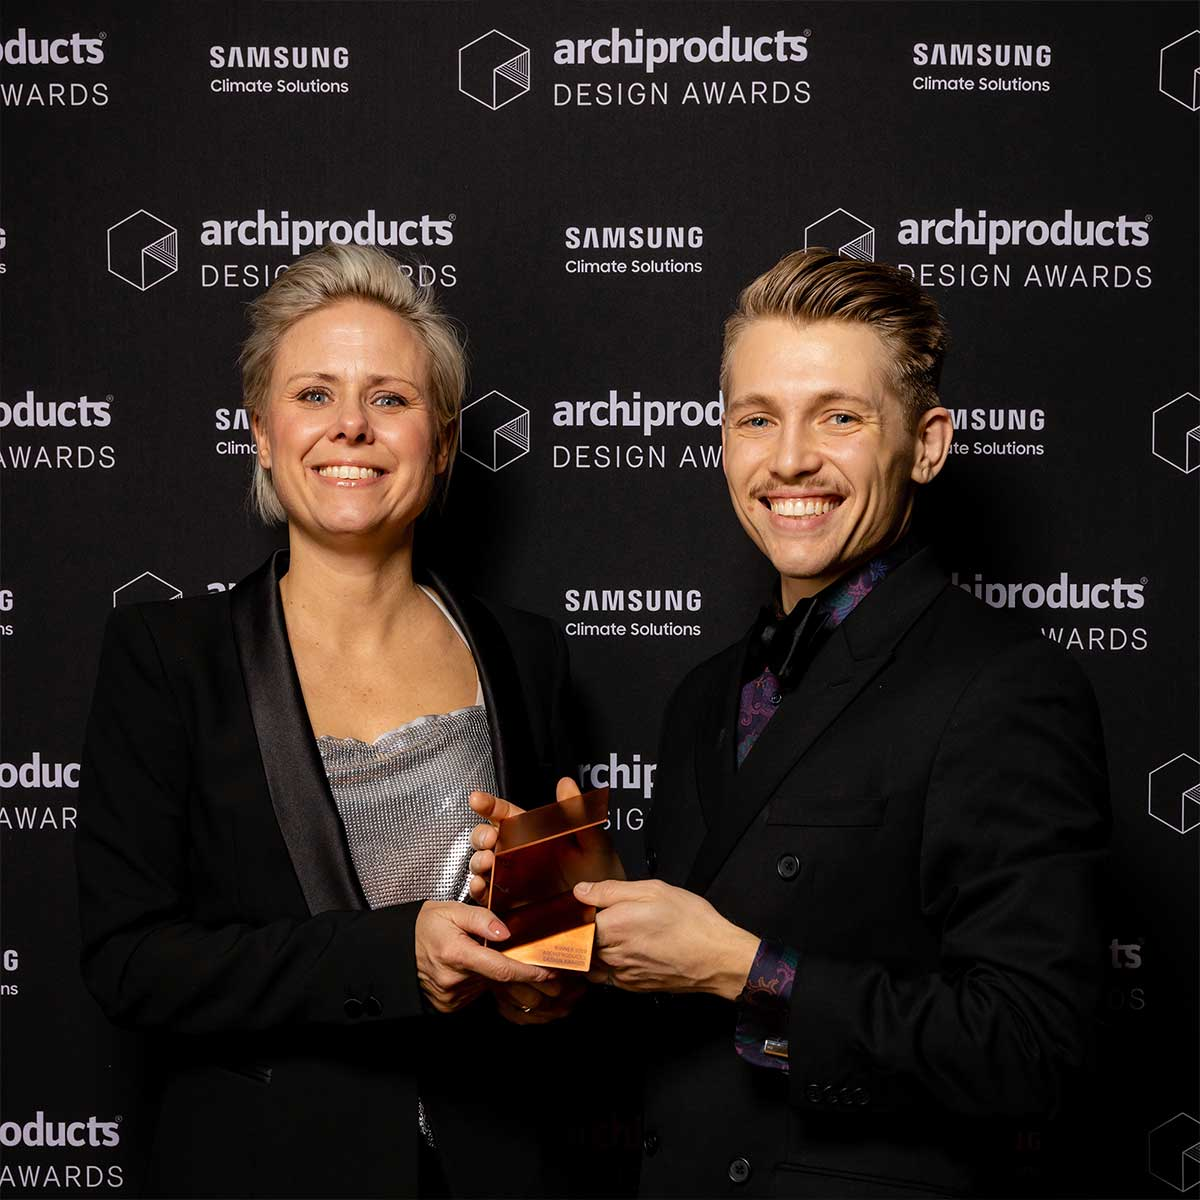 Malin from Mizetto and Karl-Magnus from ADDI at the archiproducts awards